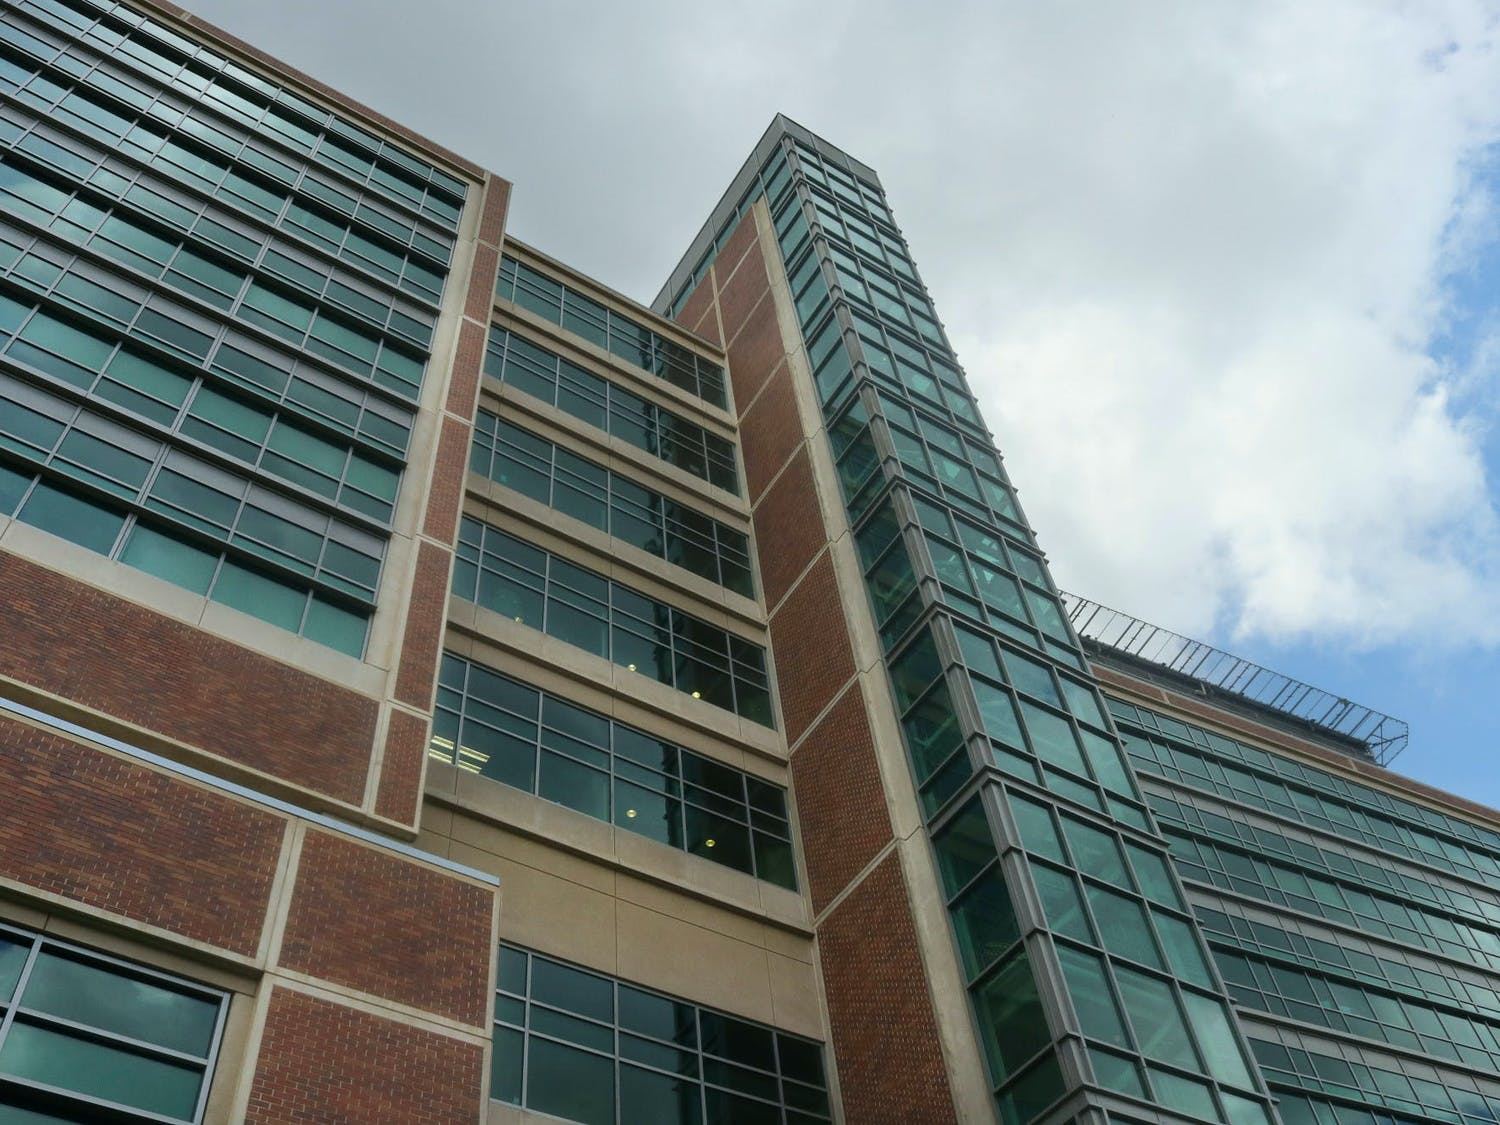 The UF Health Shands Hospital building in Gainesville, as seen on June 29, 2021, hosts over 1,100 licensed beds and services over 120,000 emergency room visits annually, according to UF Health.